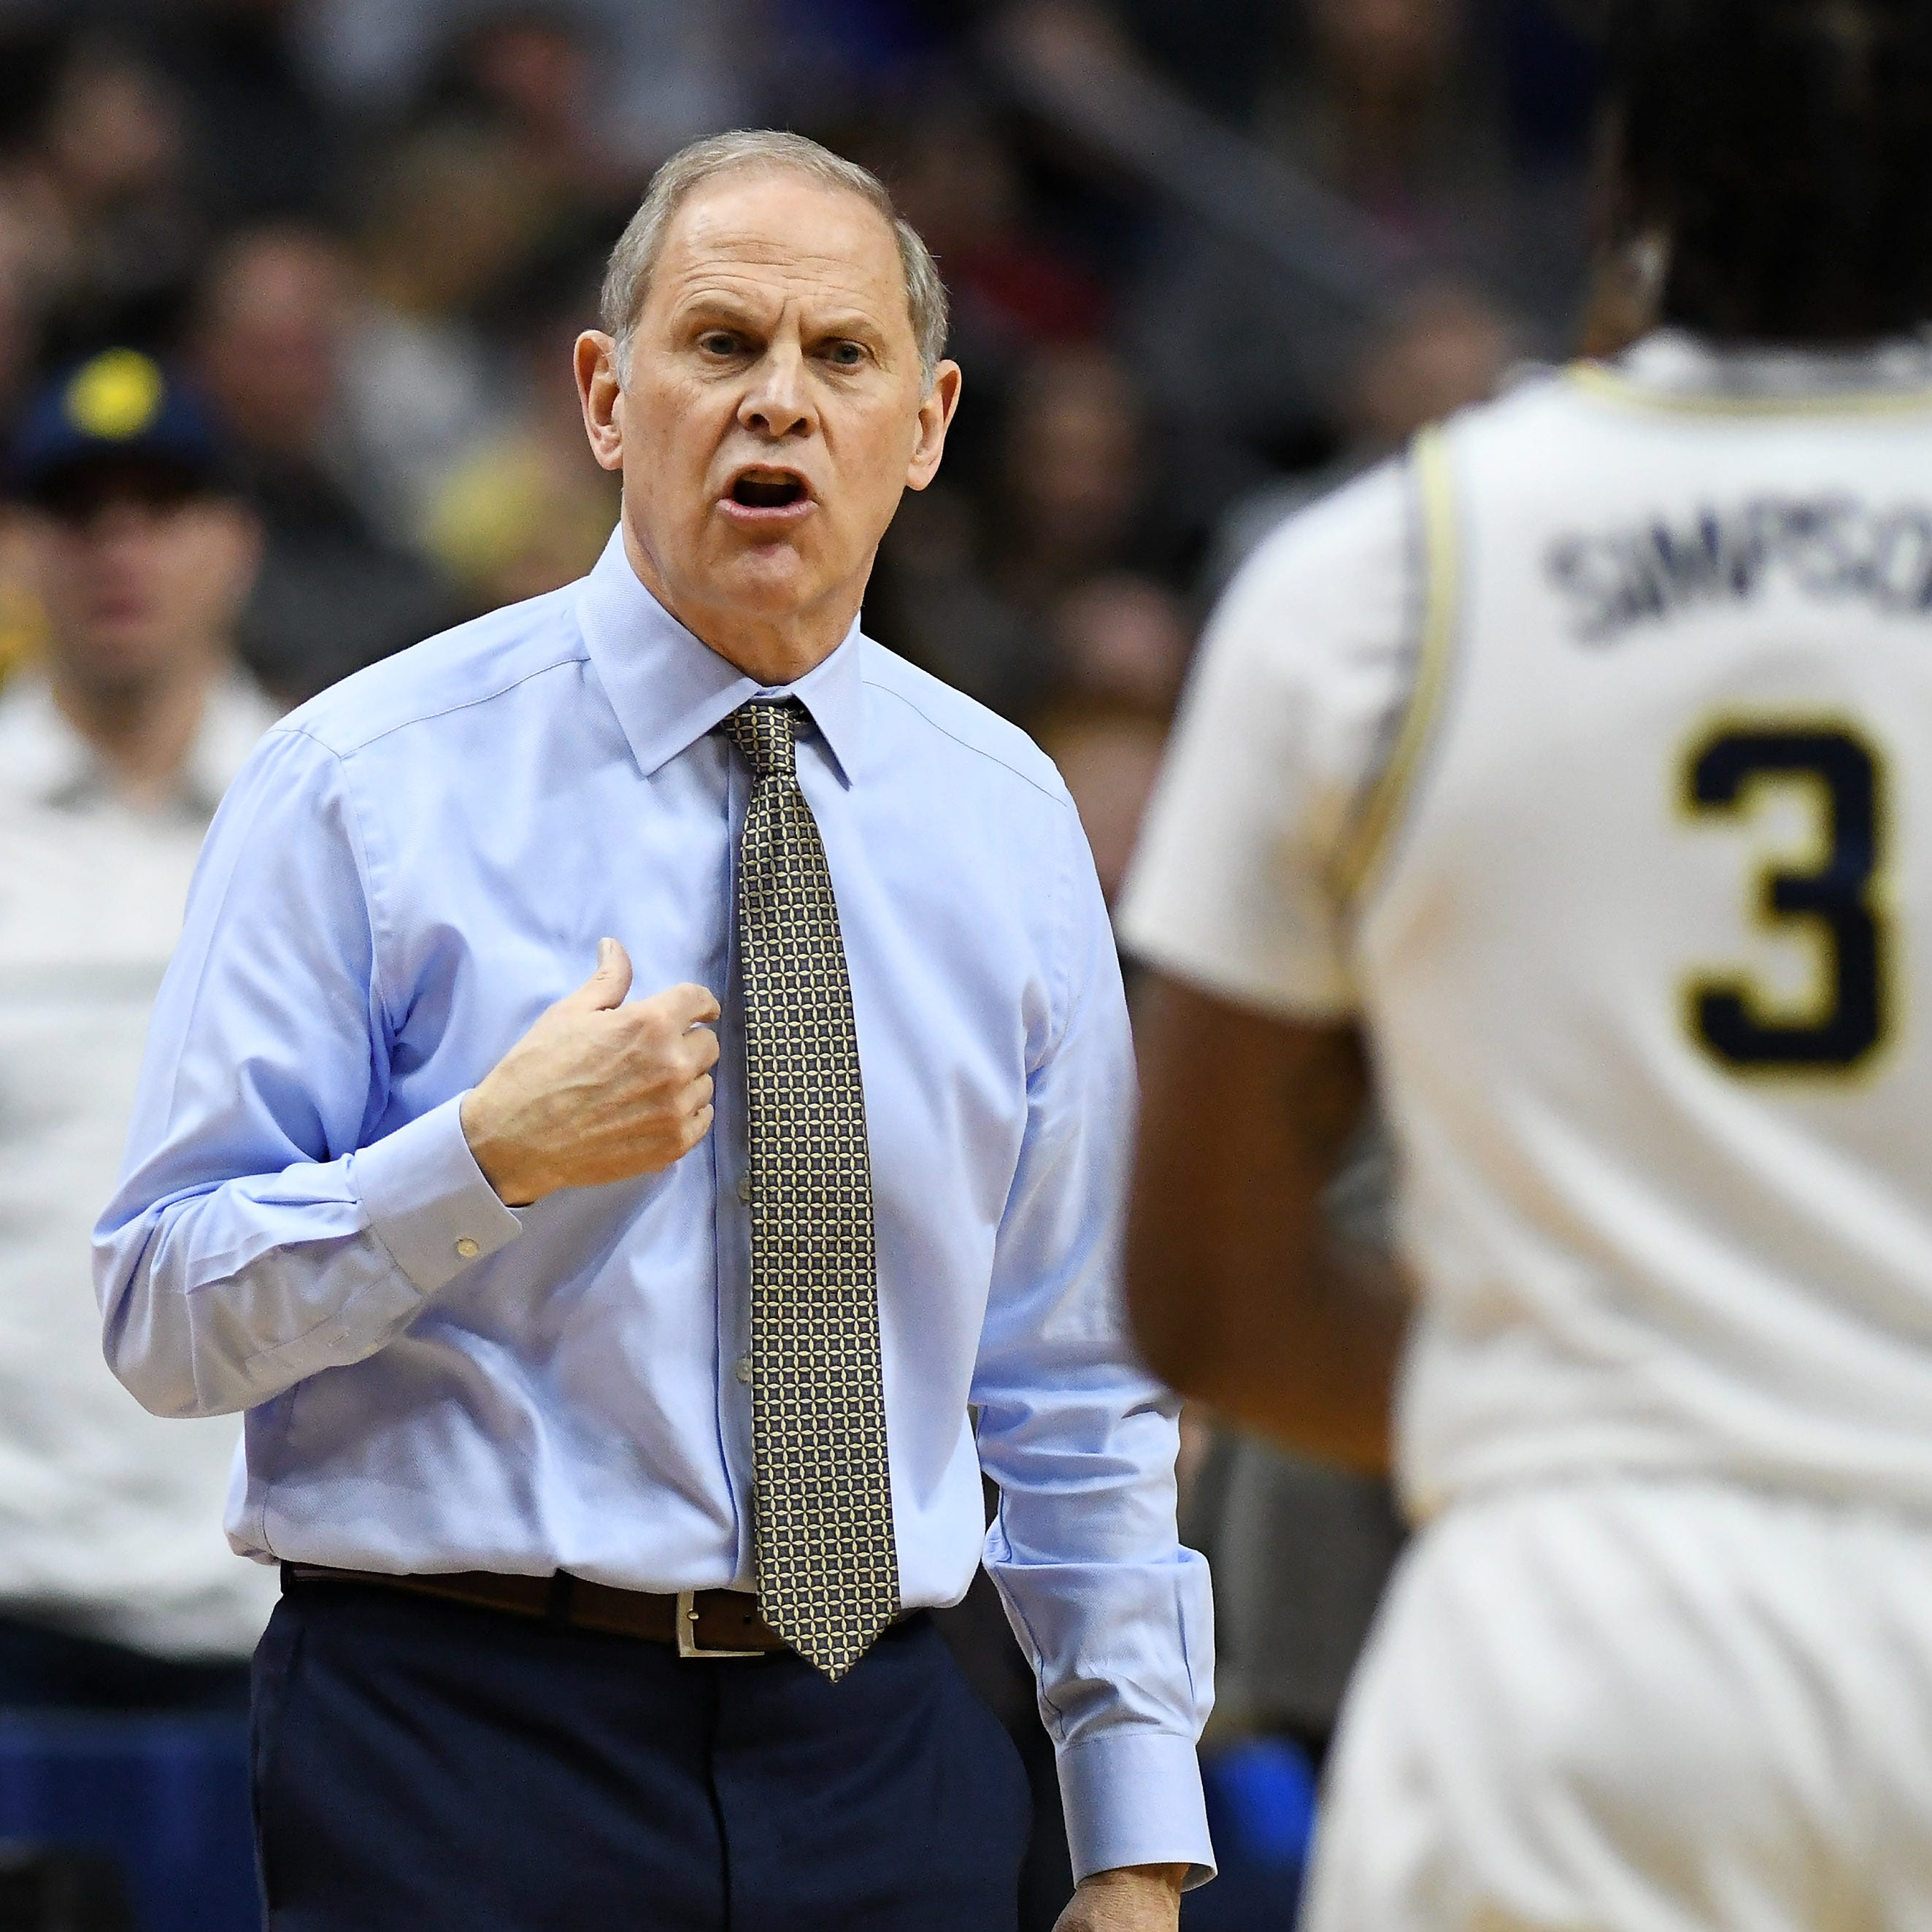 'We have to work on it': John Beilein will make isolation offense priority for Michigan